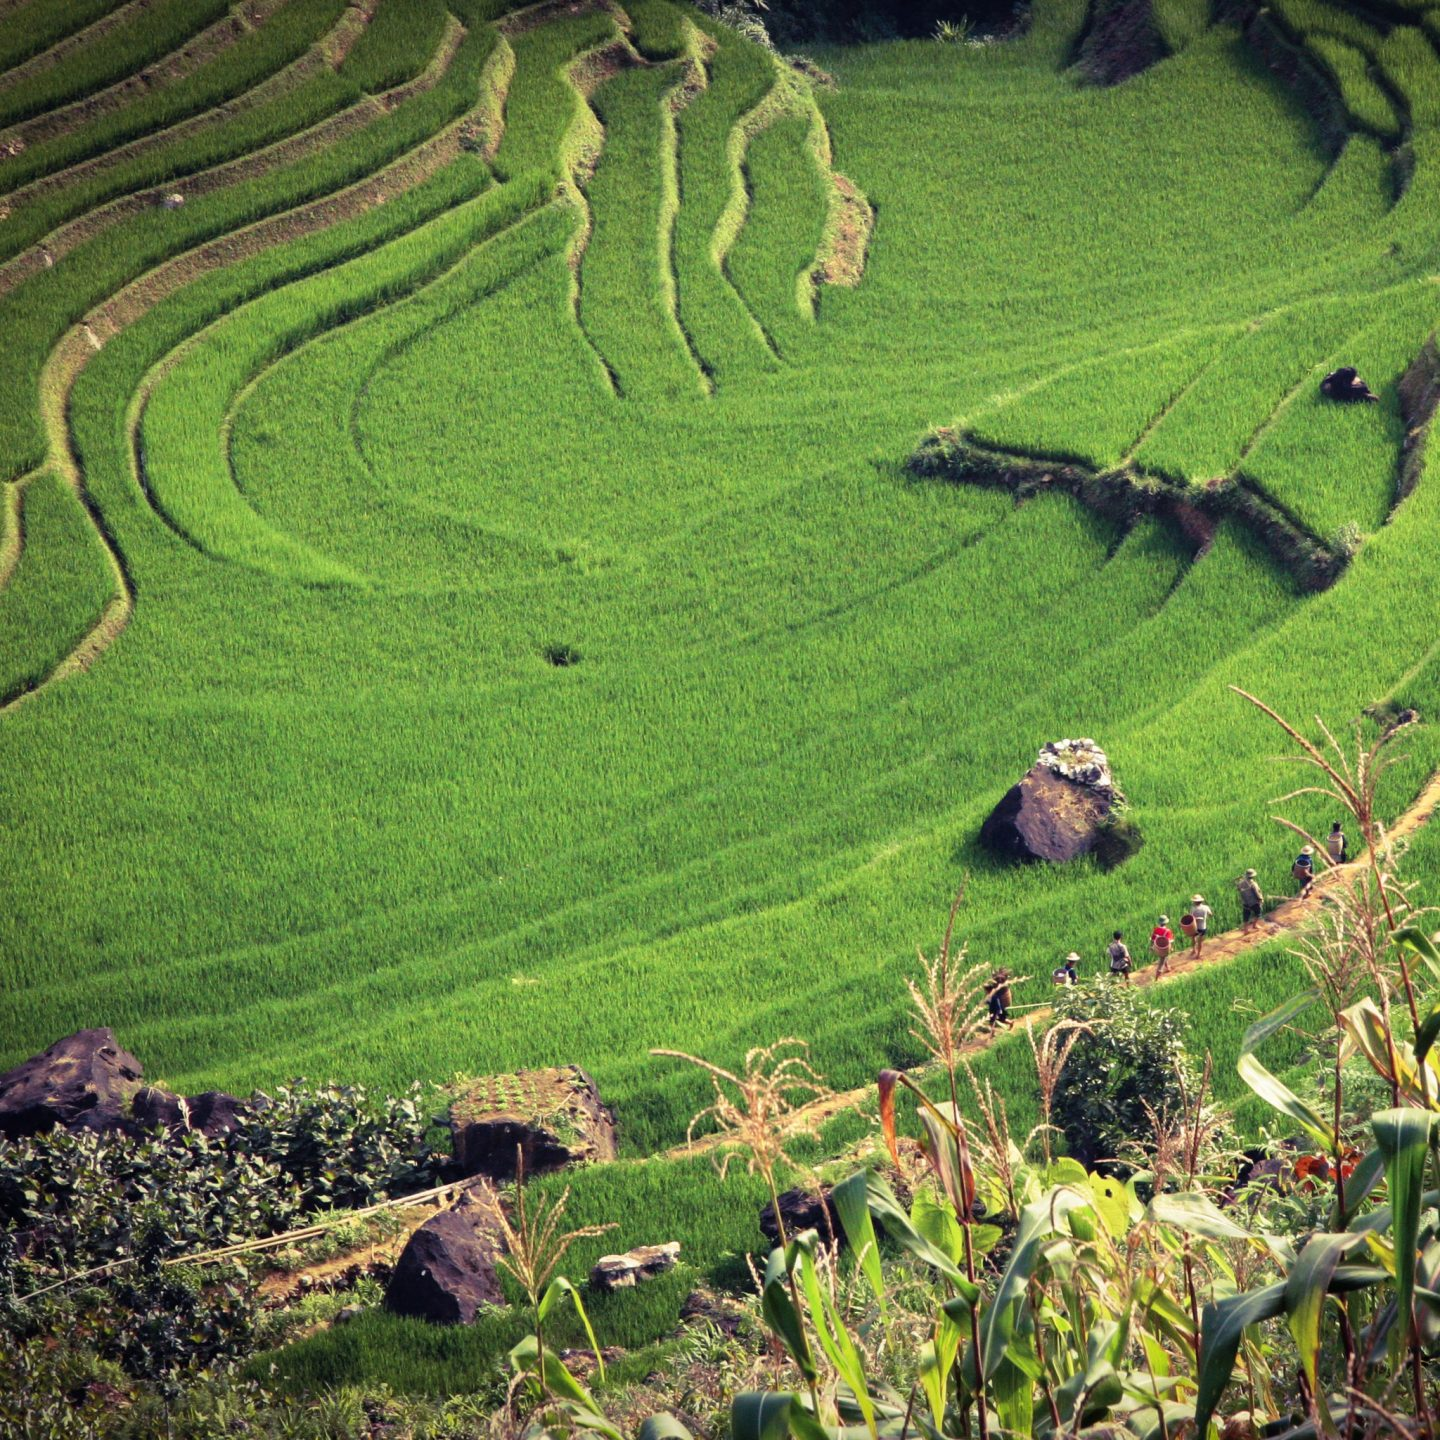 The Best Activities In Vietnam For Adventurous Travellers